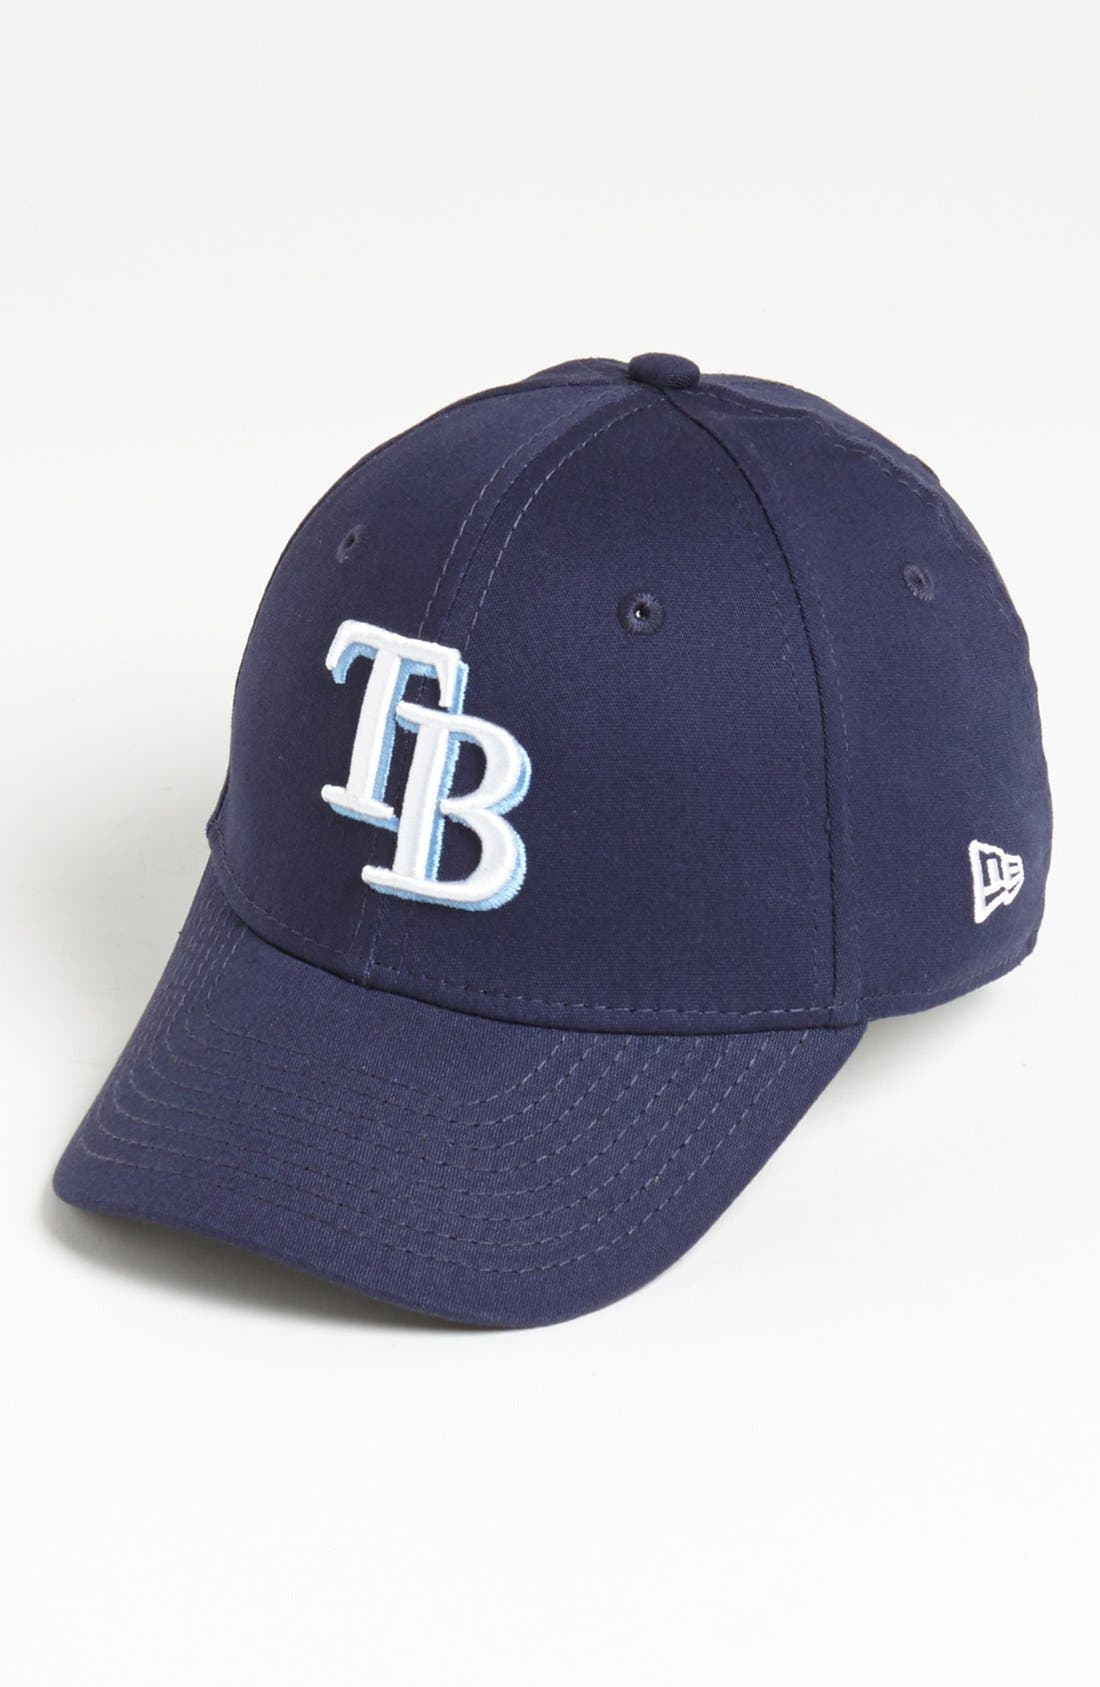 'Tampa Bay Rays - Tie Breaker' Baseball Cap,                         Main,                         color,